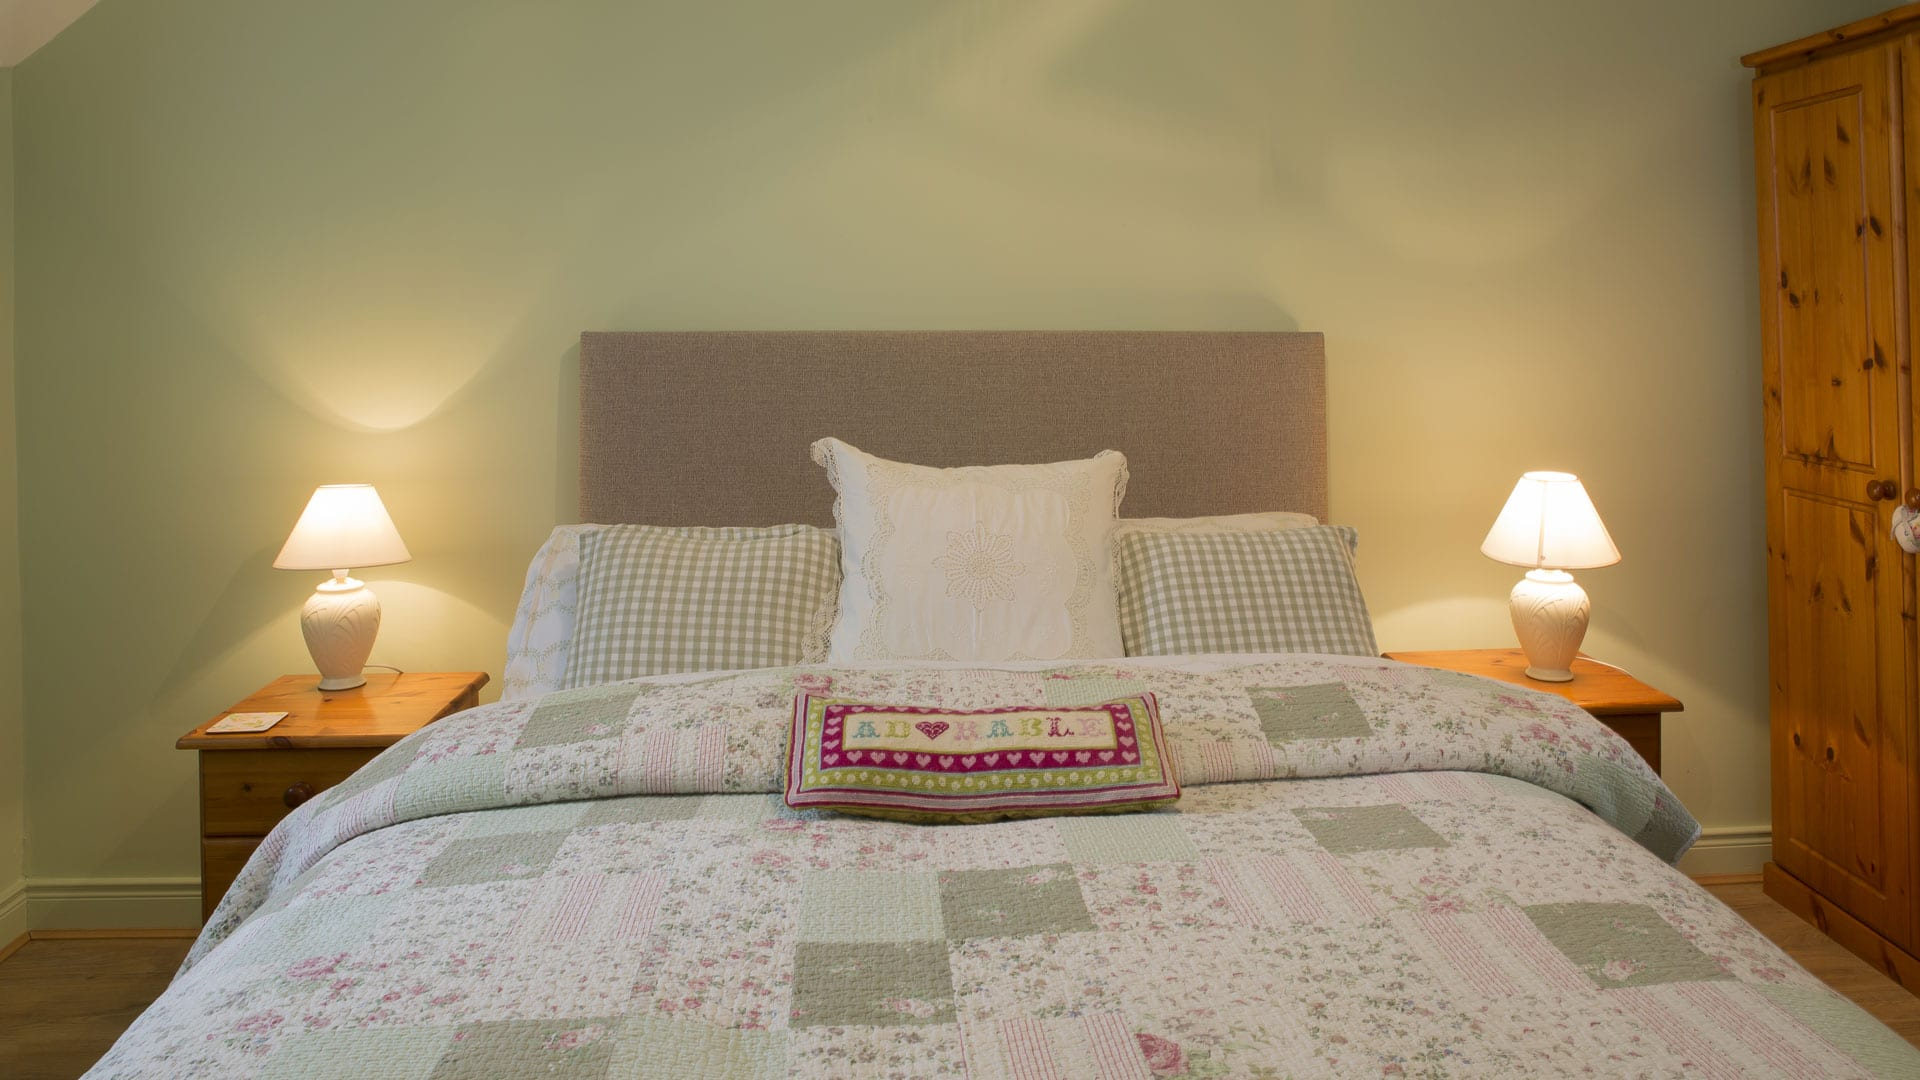 Double-Bed-Bedroom-Pillows-Blankets--Holiday-Homes-Ireland-Meath-Dunshaughlin-Self-Catering